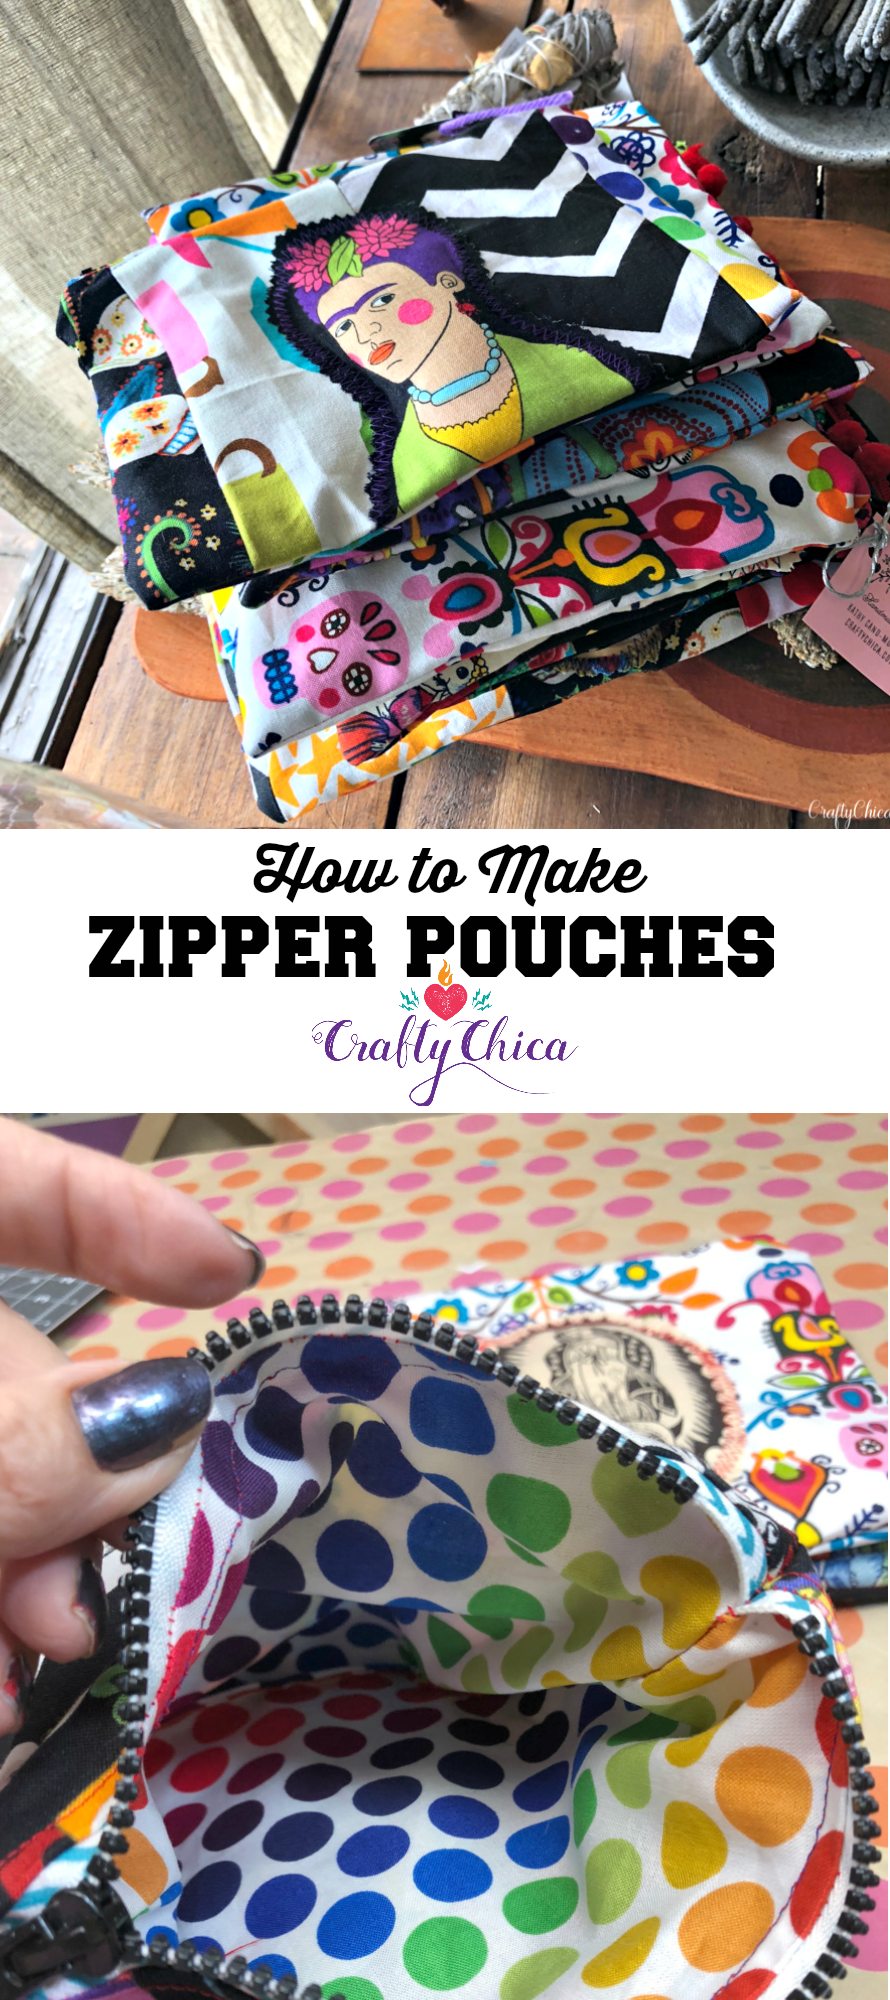 Going Soft: My Adventure With Zipper Pouches | Pouches, Crafty and ...